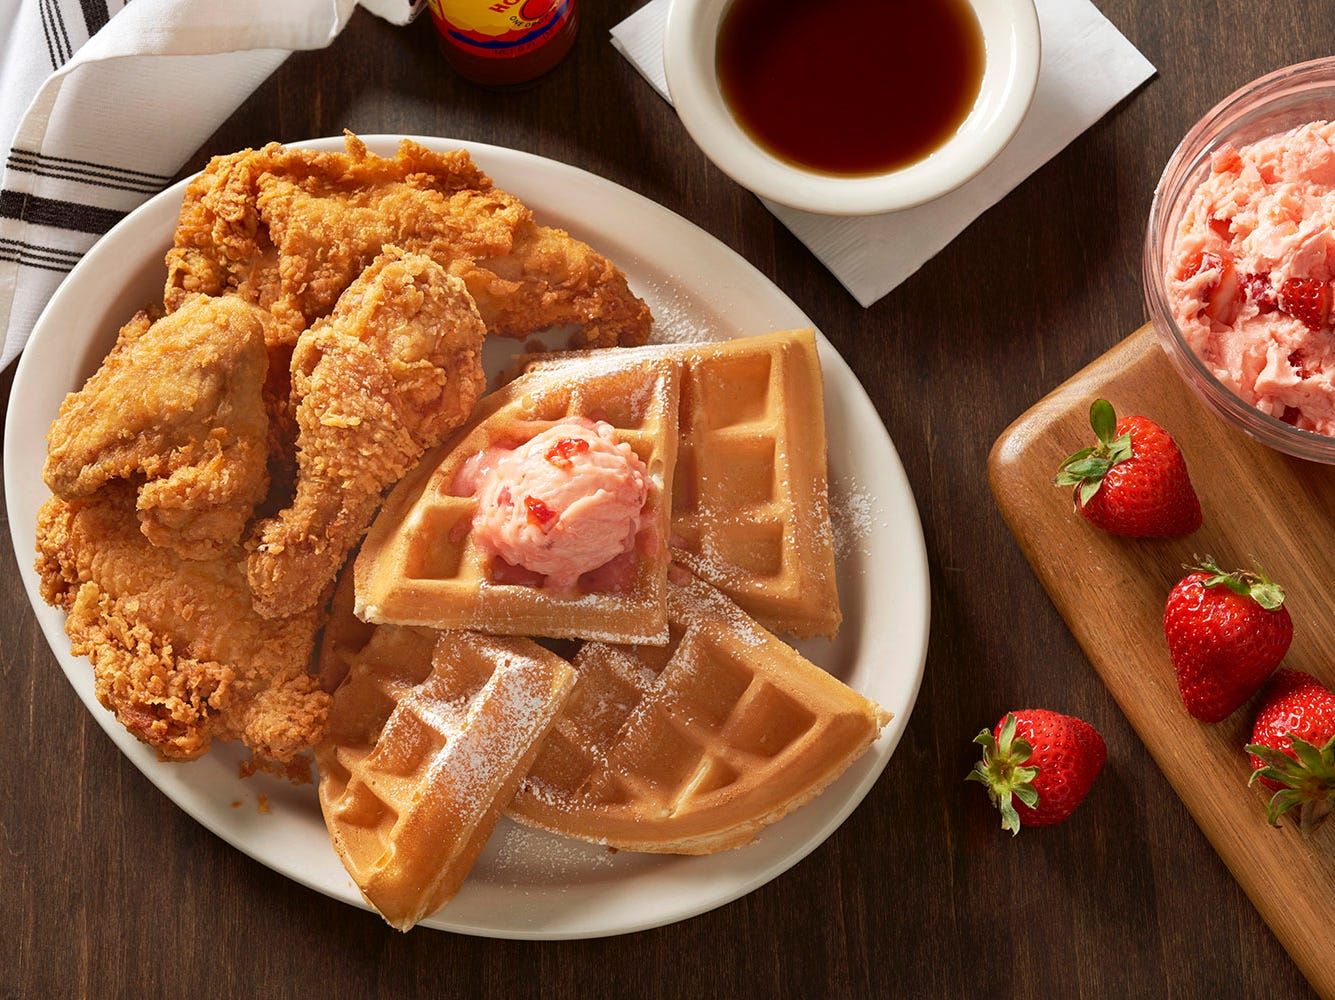 Metro Diner's Fried Chicken & Waffle dish features a Belgian waffle topped with sweet, strawberry butter and half a fried chicken served with the diner's signature sweet and spicy sauce.